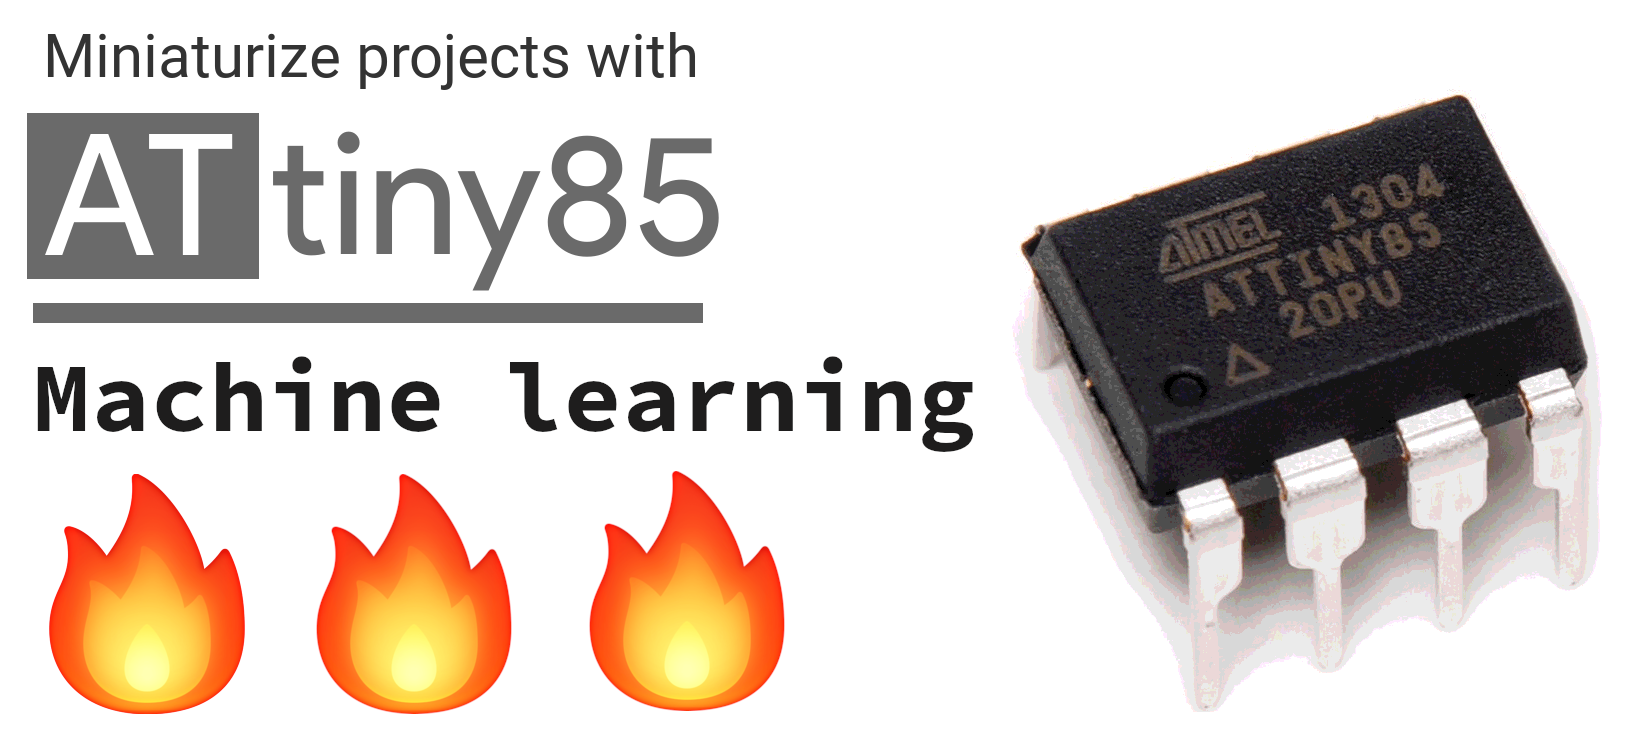 Embedded Machine learning on Attiny85